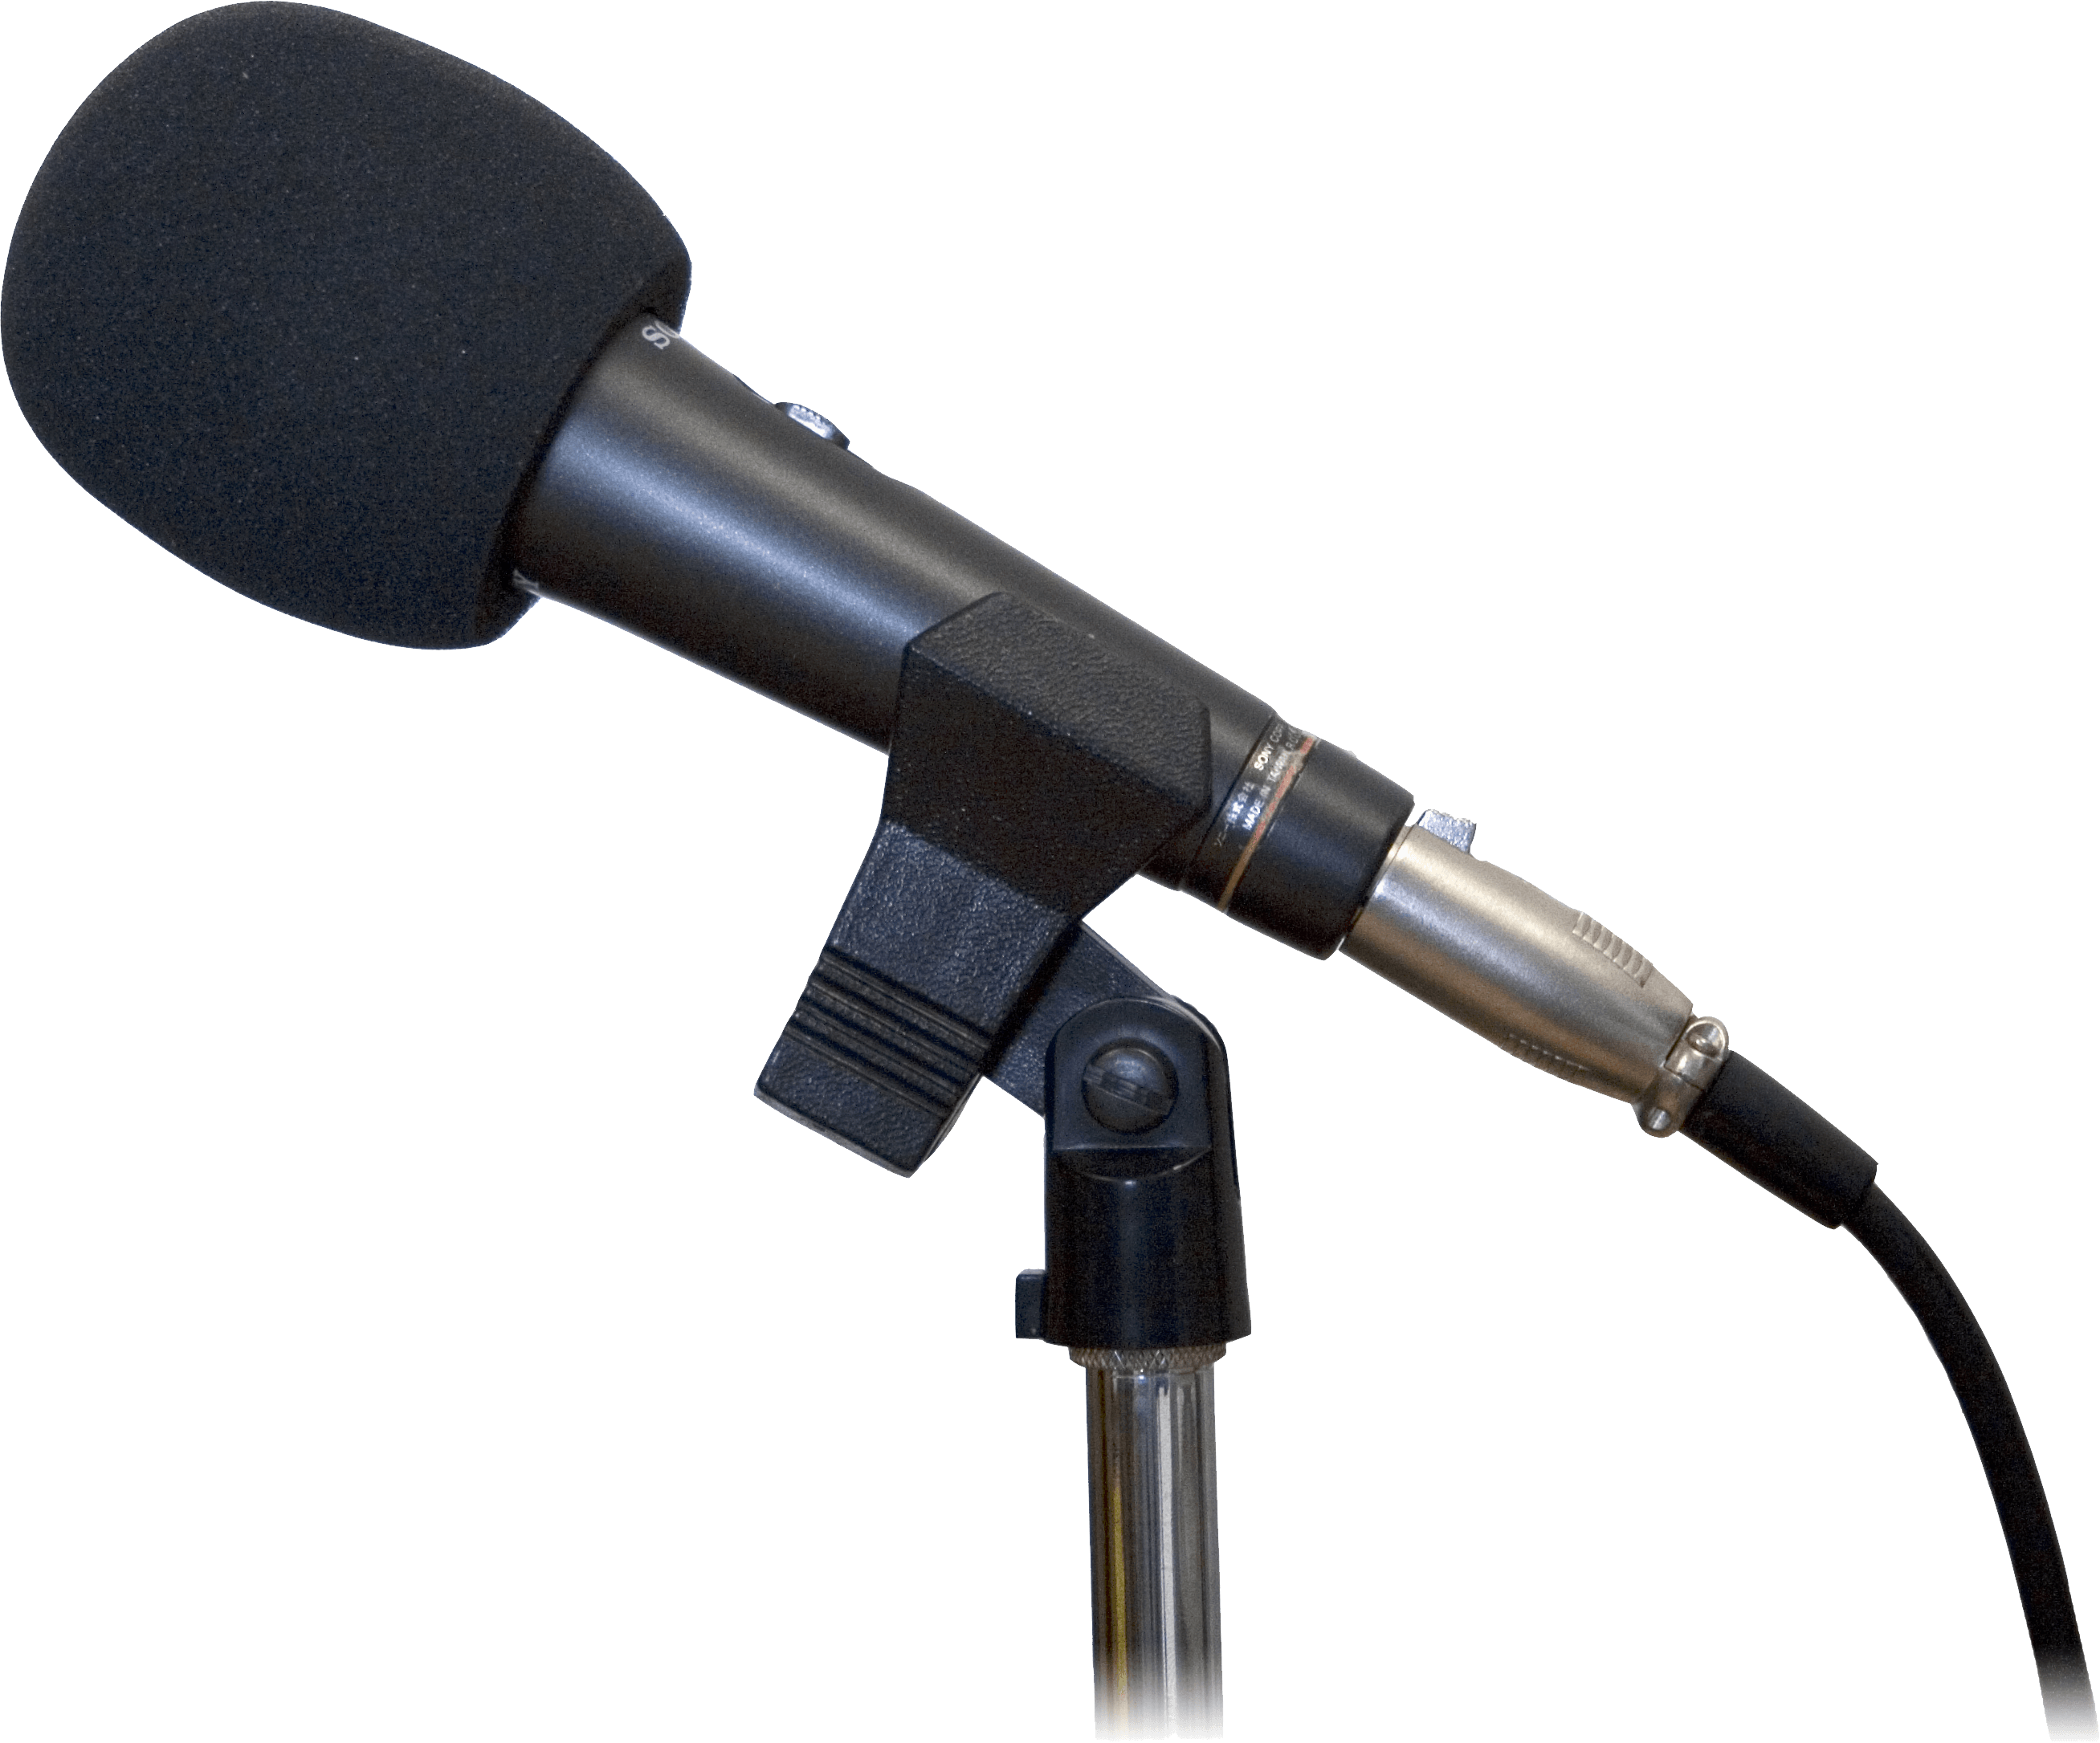 2615x2171 Download Microphone Free Png Photo Images And Clipart Freepngimg